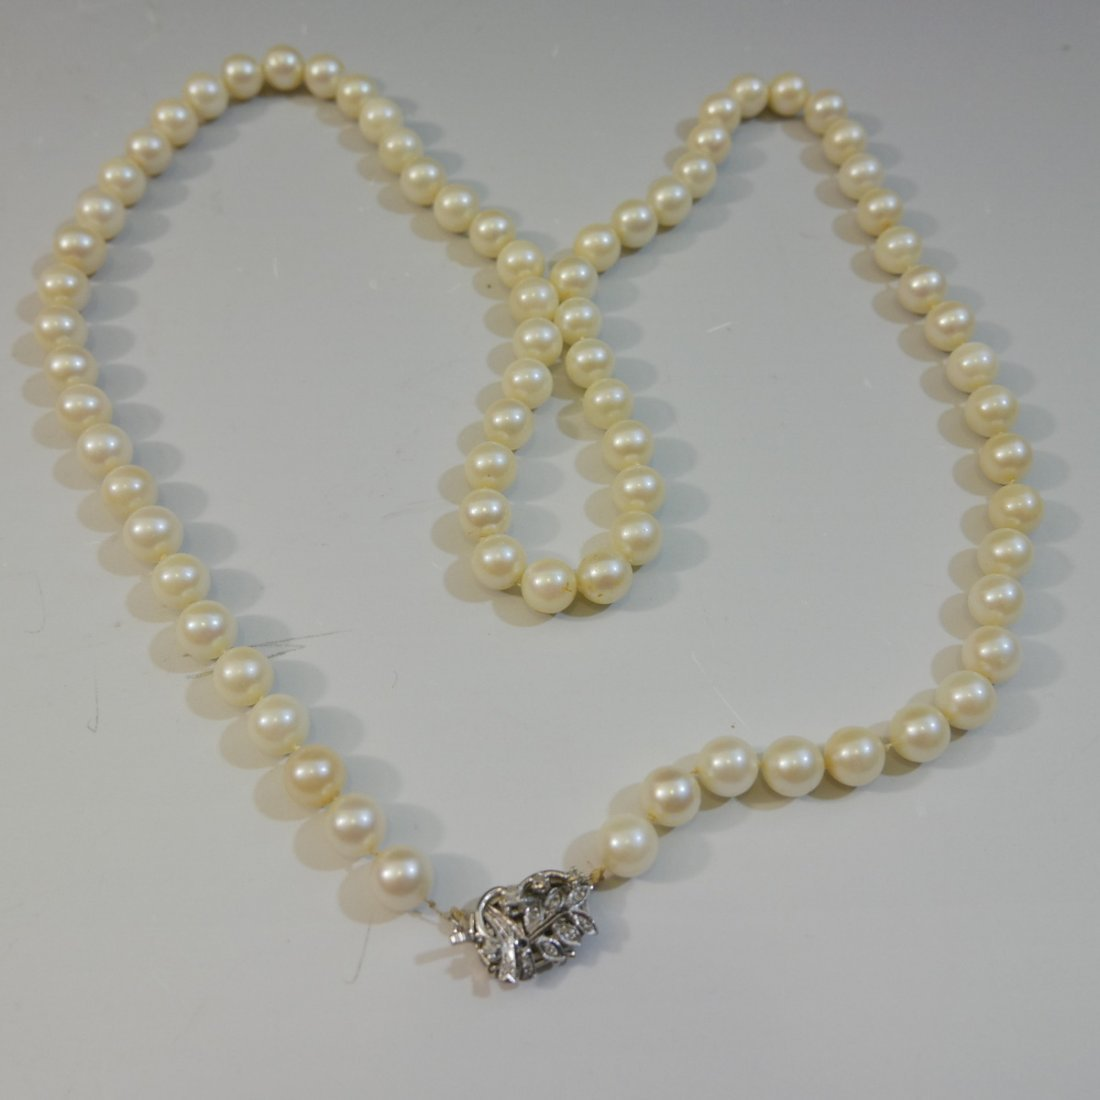 ELEGANT NATURAL PEARL NECKLACE WITH 14K WHITE GOLD